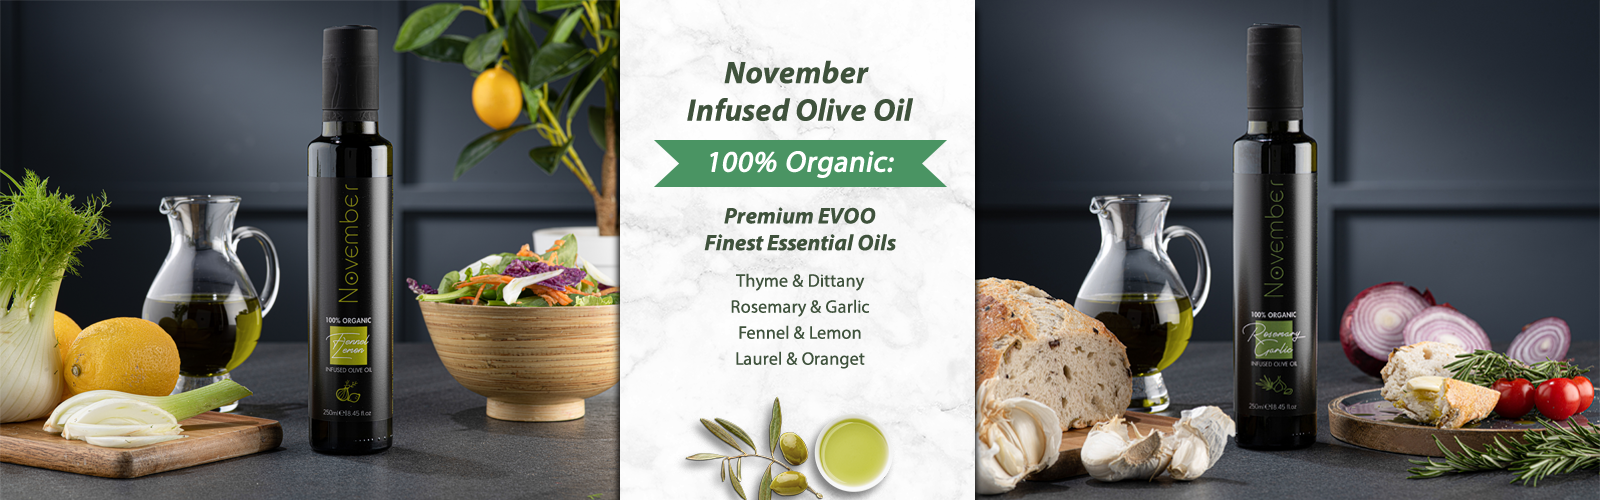 Infused Oil Homepage Banner 2 White Background